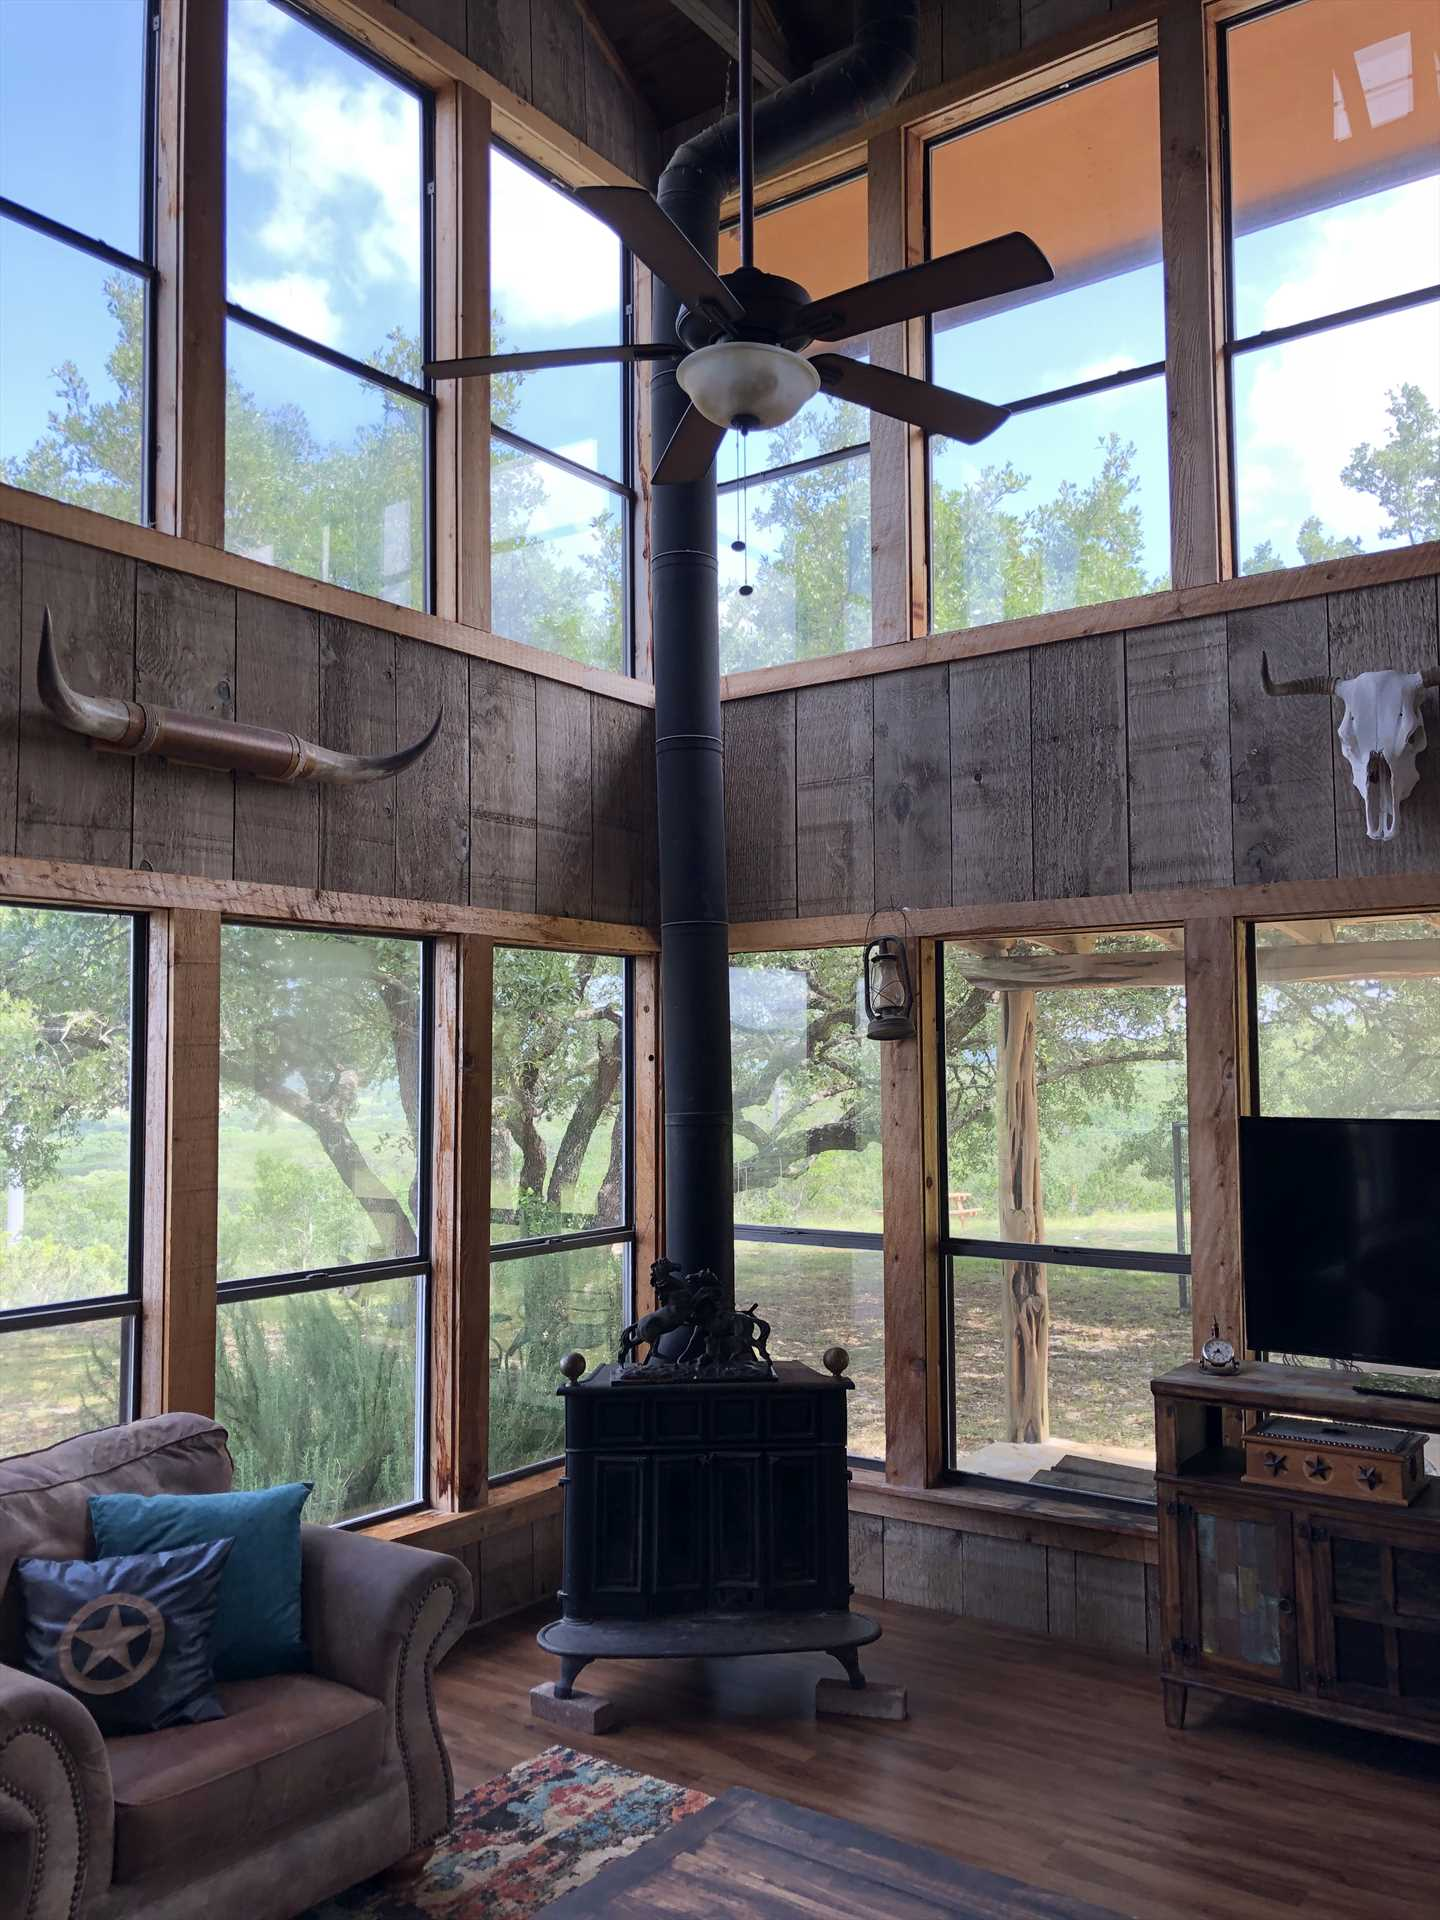 The two-story-tall living area invites tons of natural light into the rustic space, and views of the Hill Country that have to be seen to be believed.